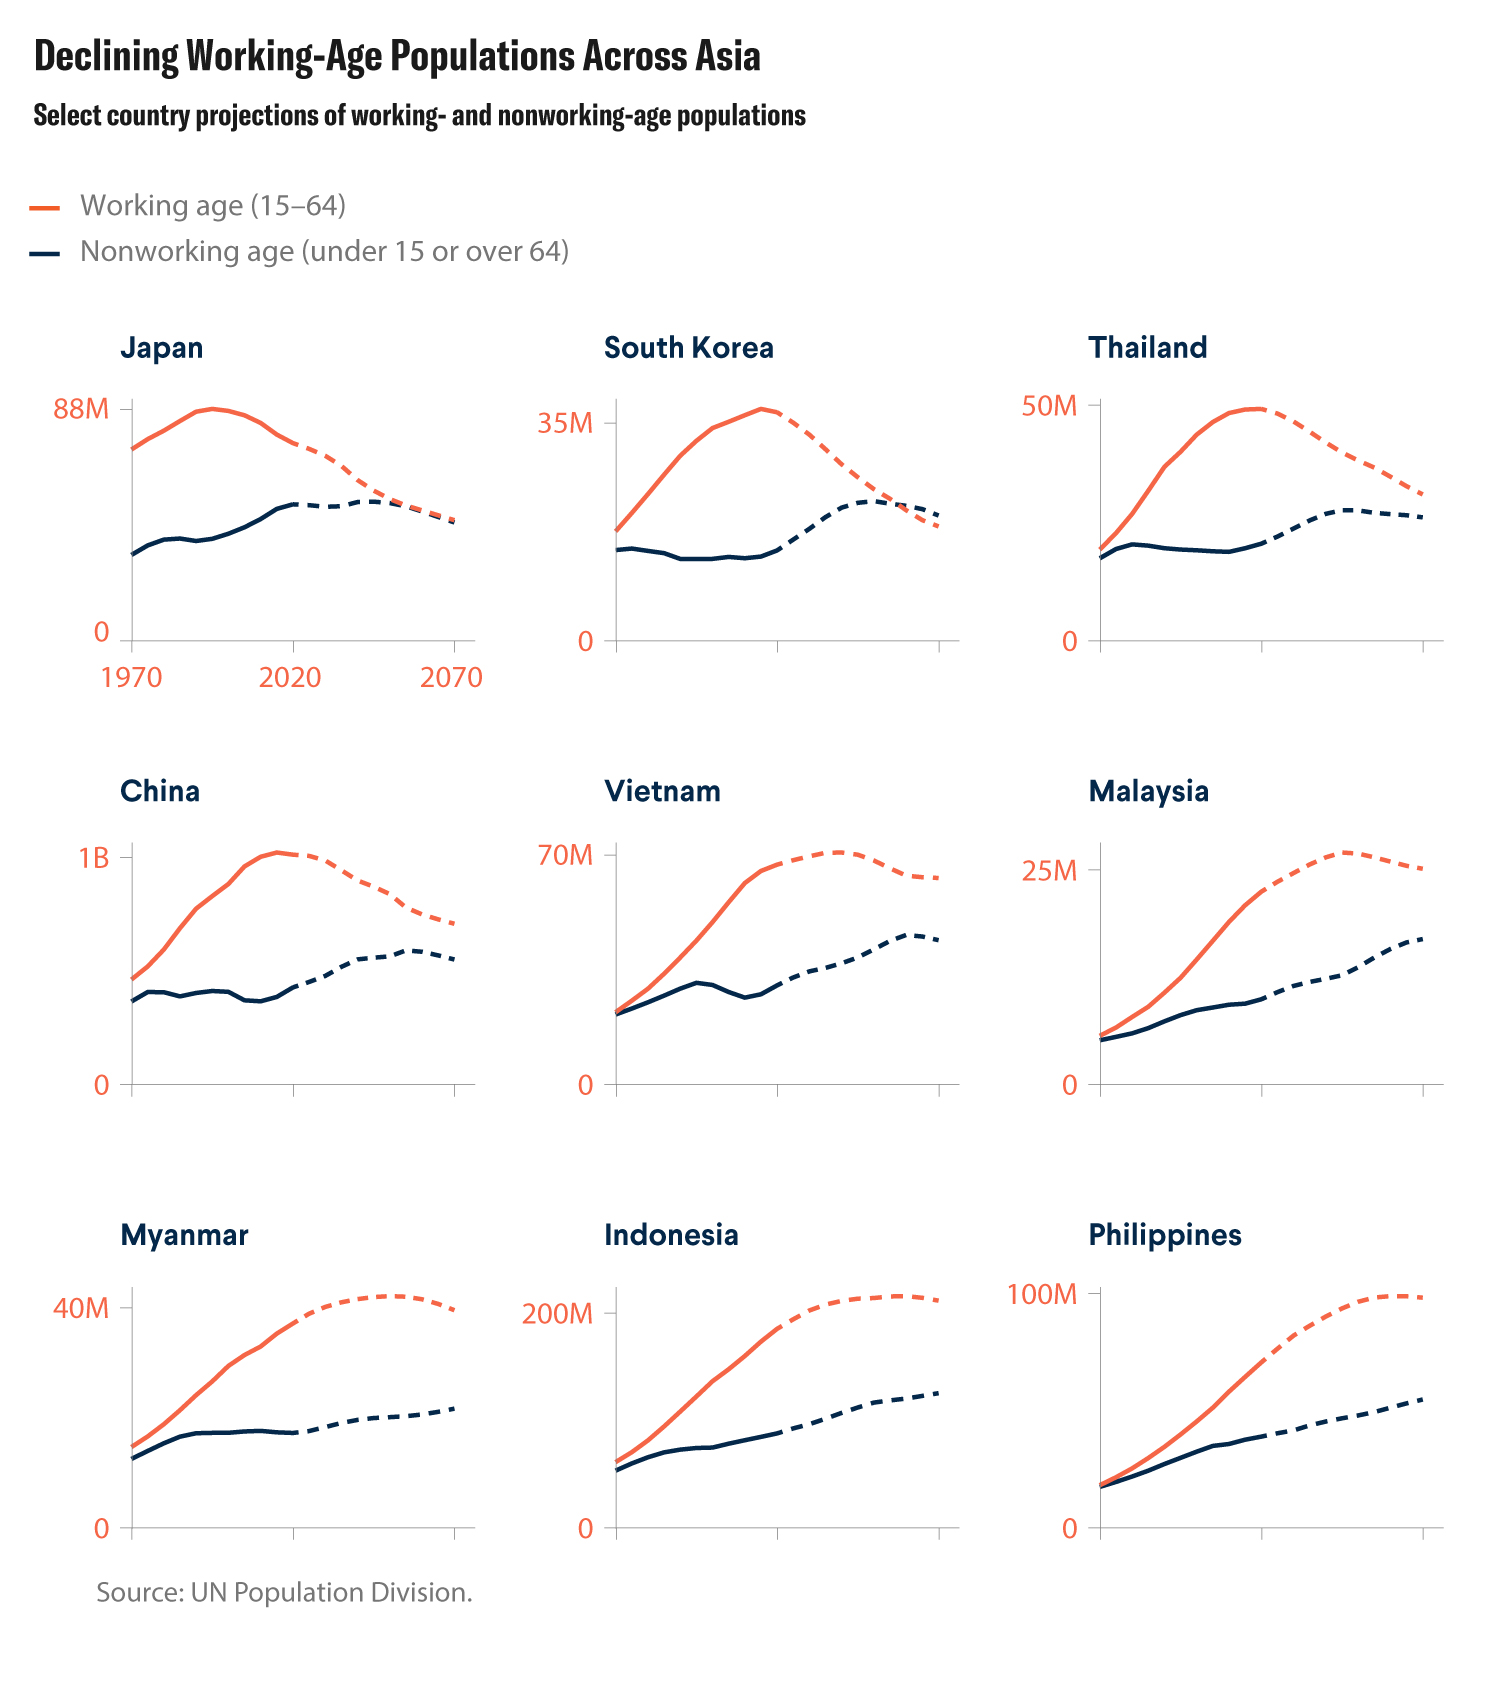 The image is a 3x3 grid of graphs, each showing one major Asian country and the historic and projected growth of its working- and nonworking-age populations over the hundred-year span.